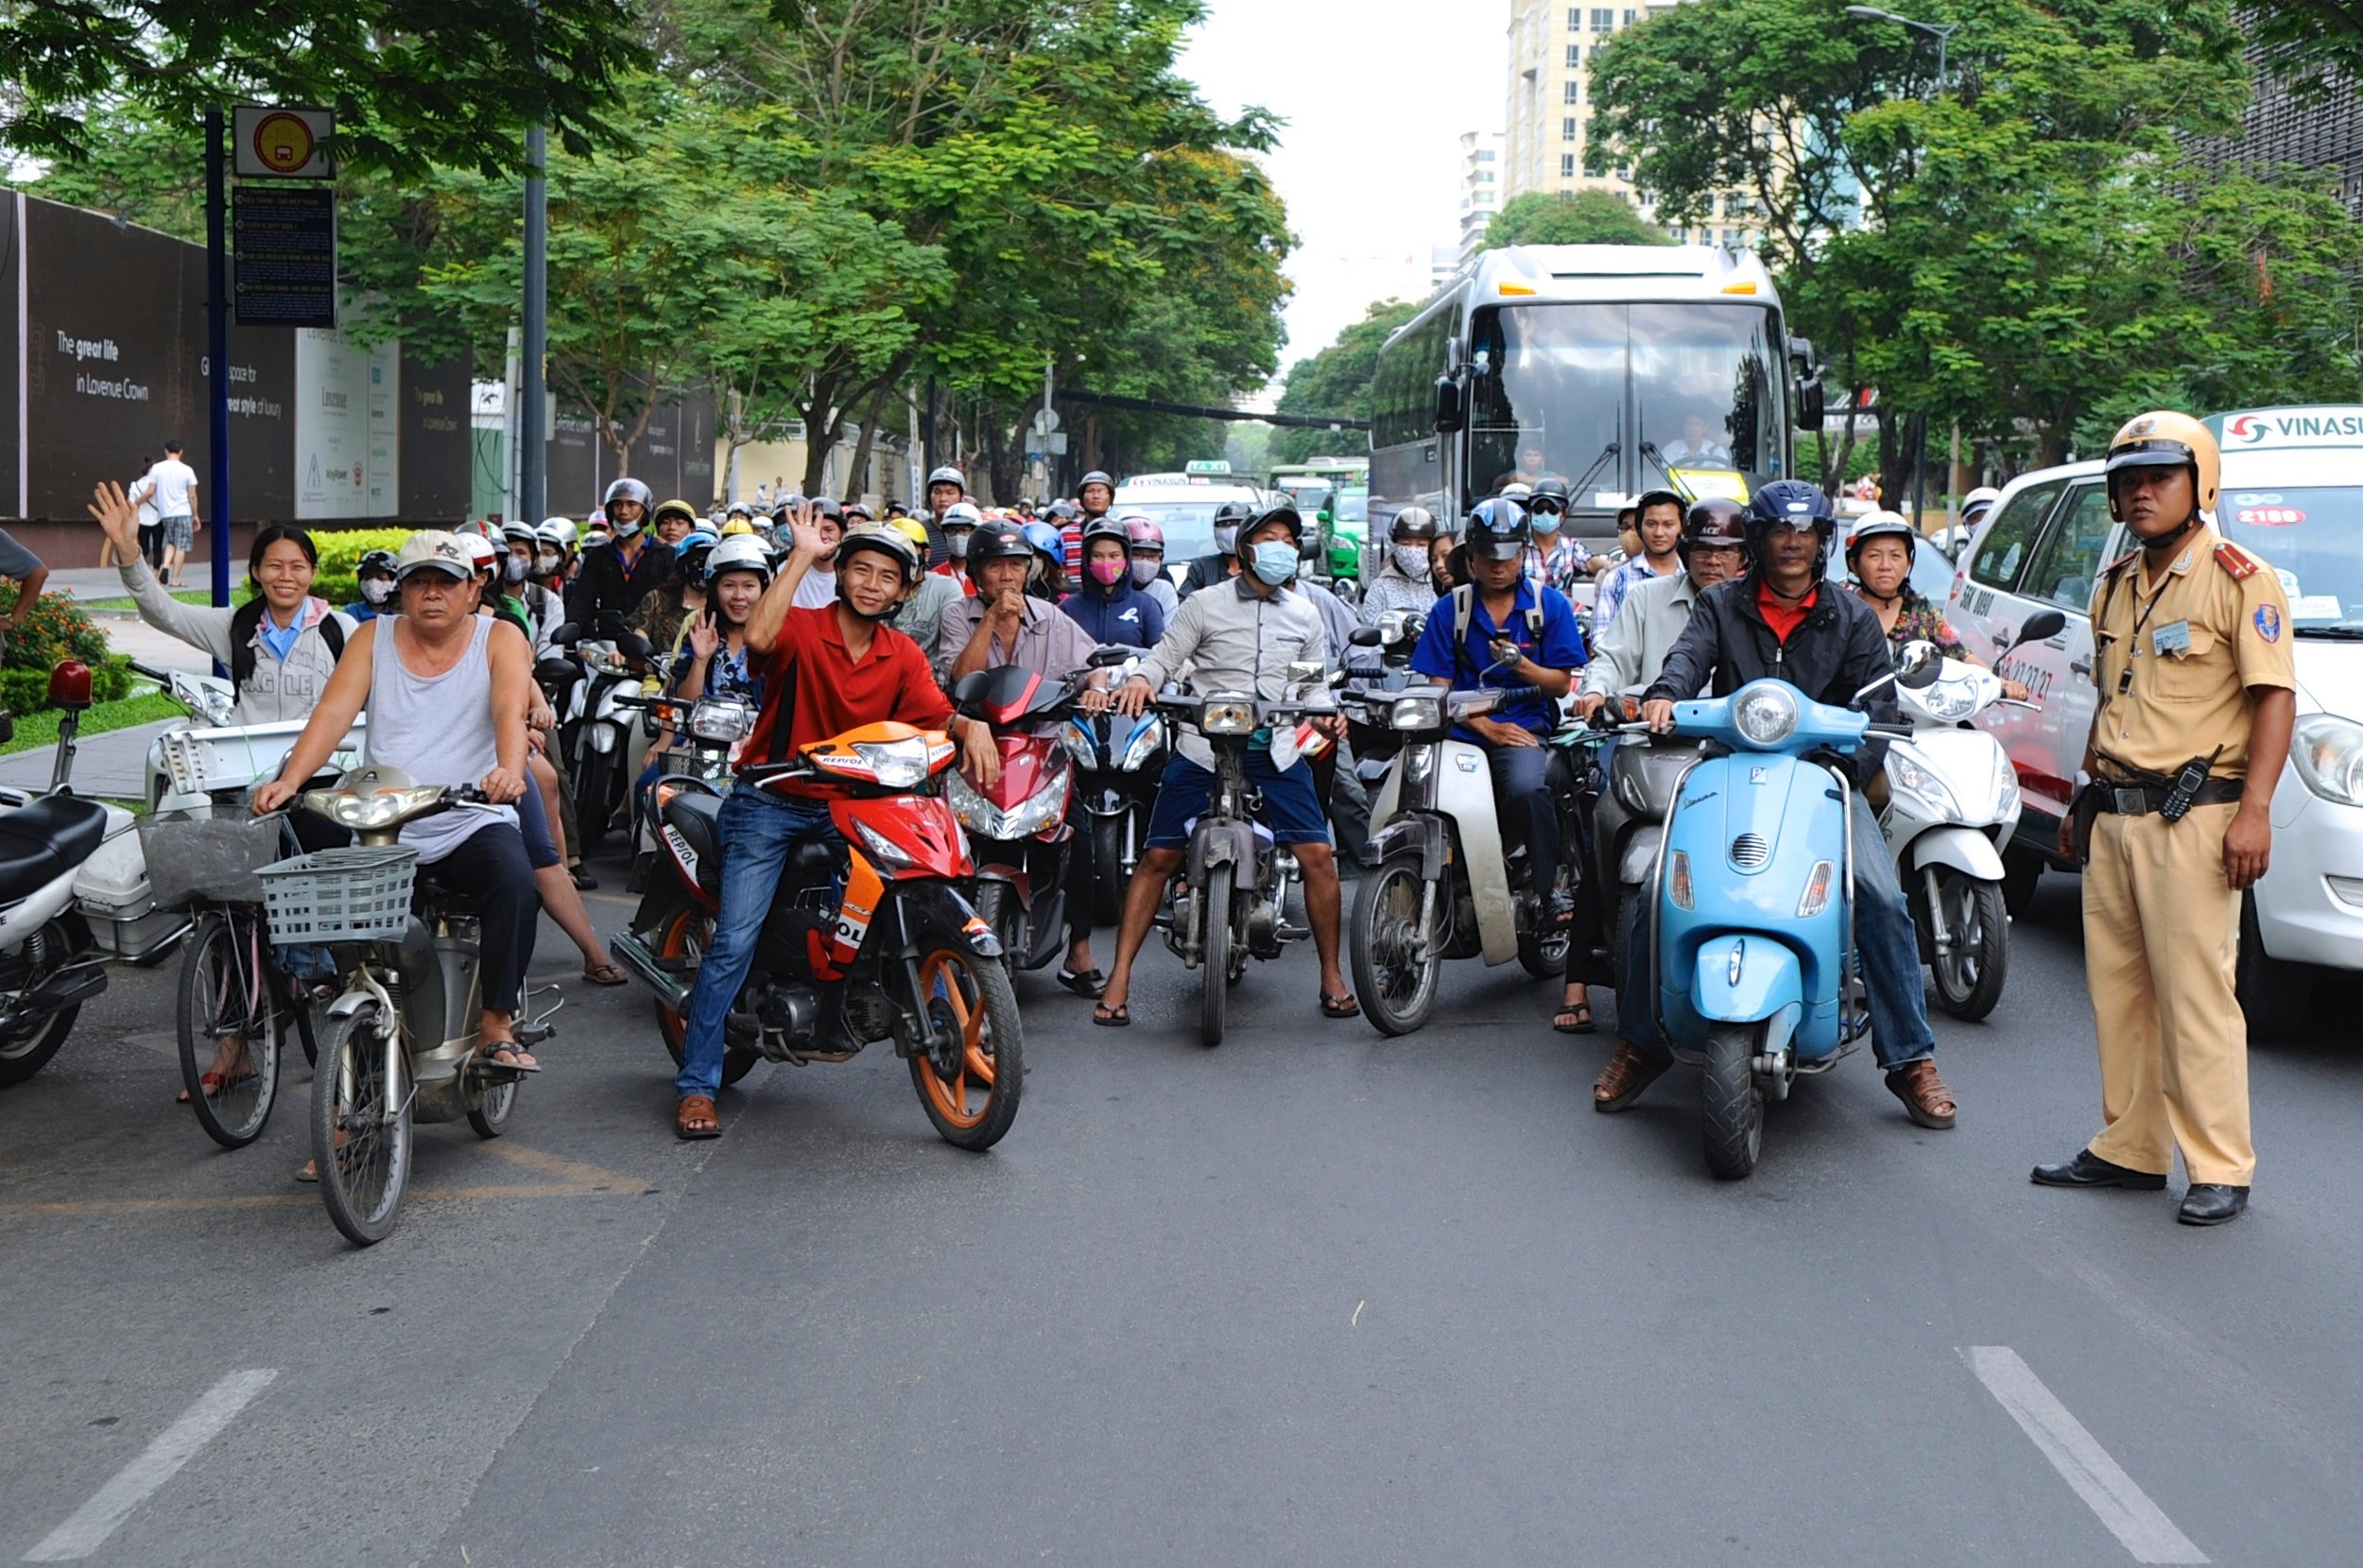 Bike riders waiting at the instruction of a police officer for our party to cross the street.